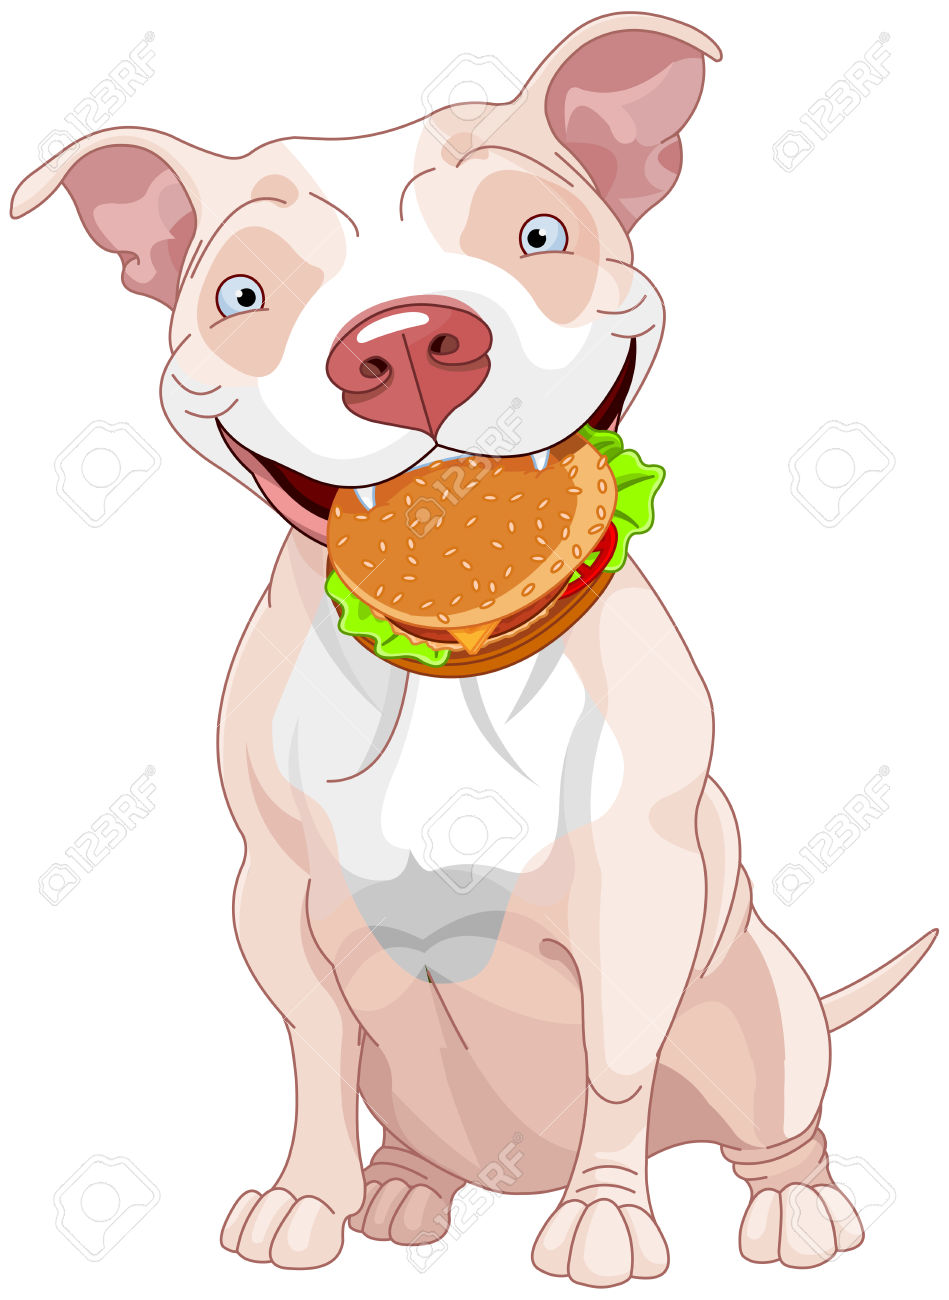 Pitbull Puppy clipart #18, Download drawings